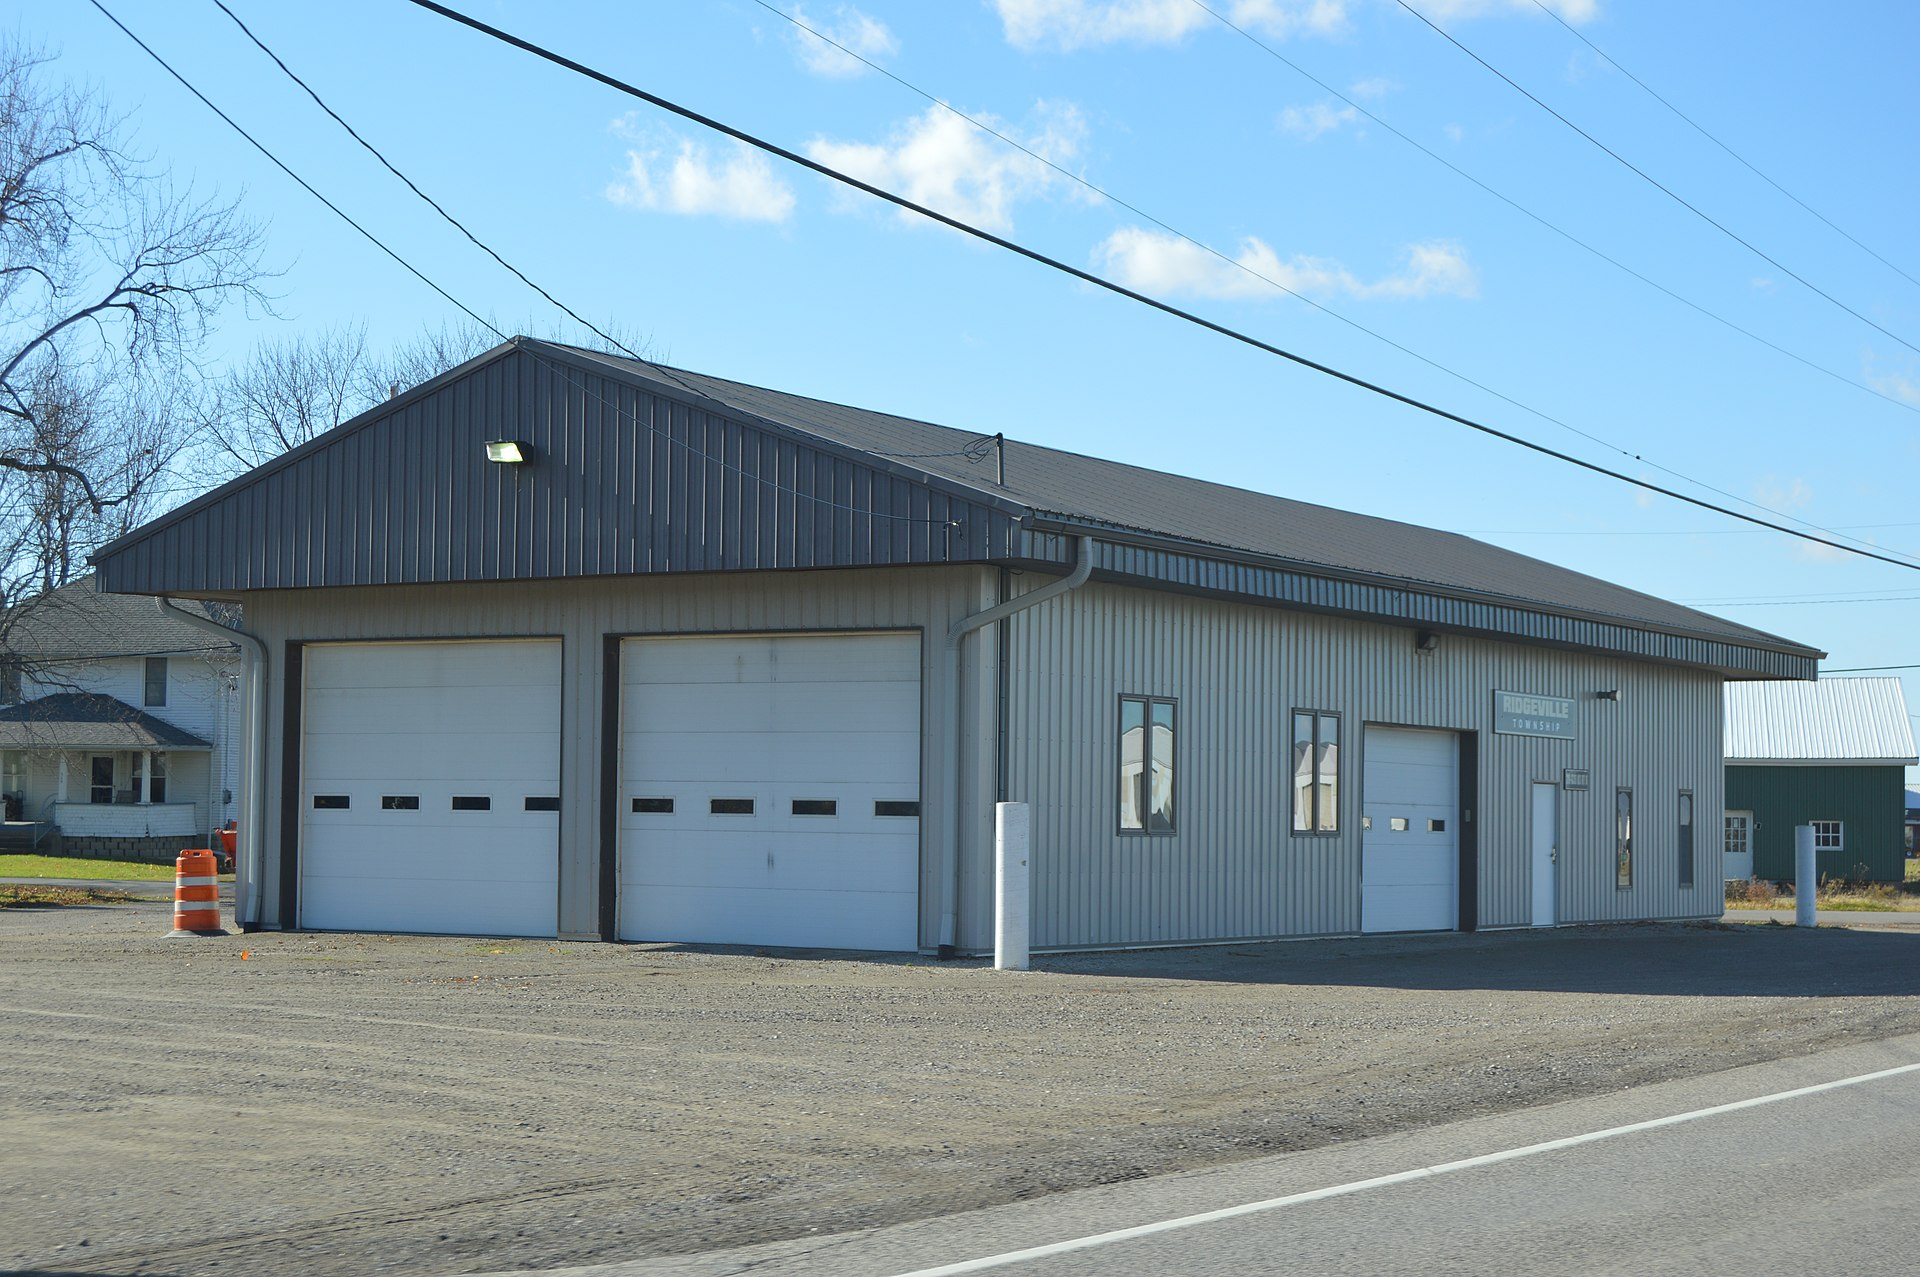 ridgeville corners Fin farm llc is a fish farm and water management business located in northwest ohio.